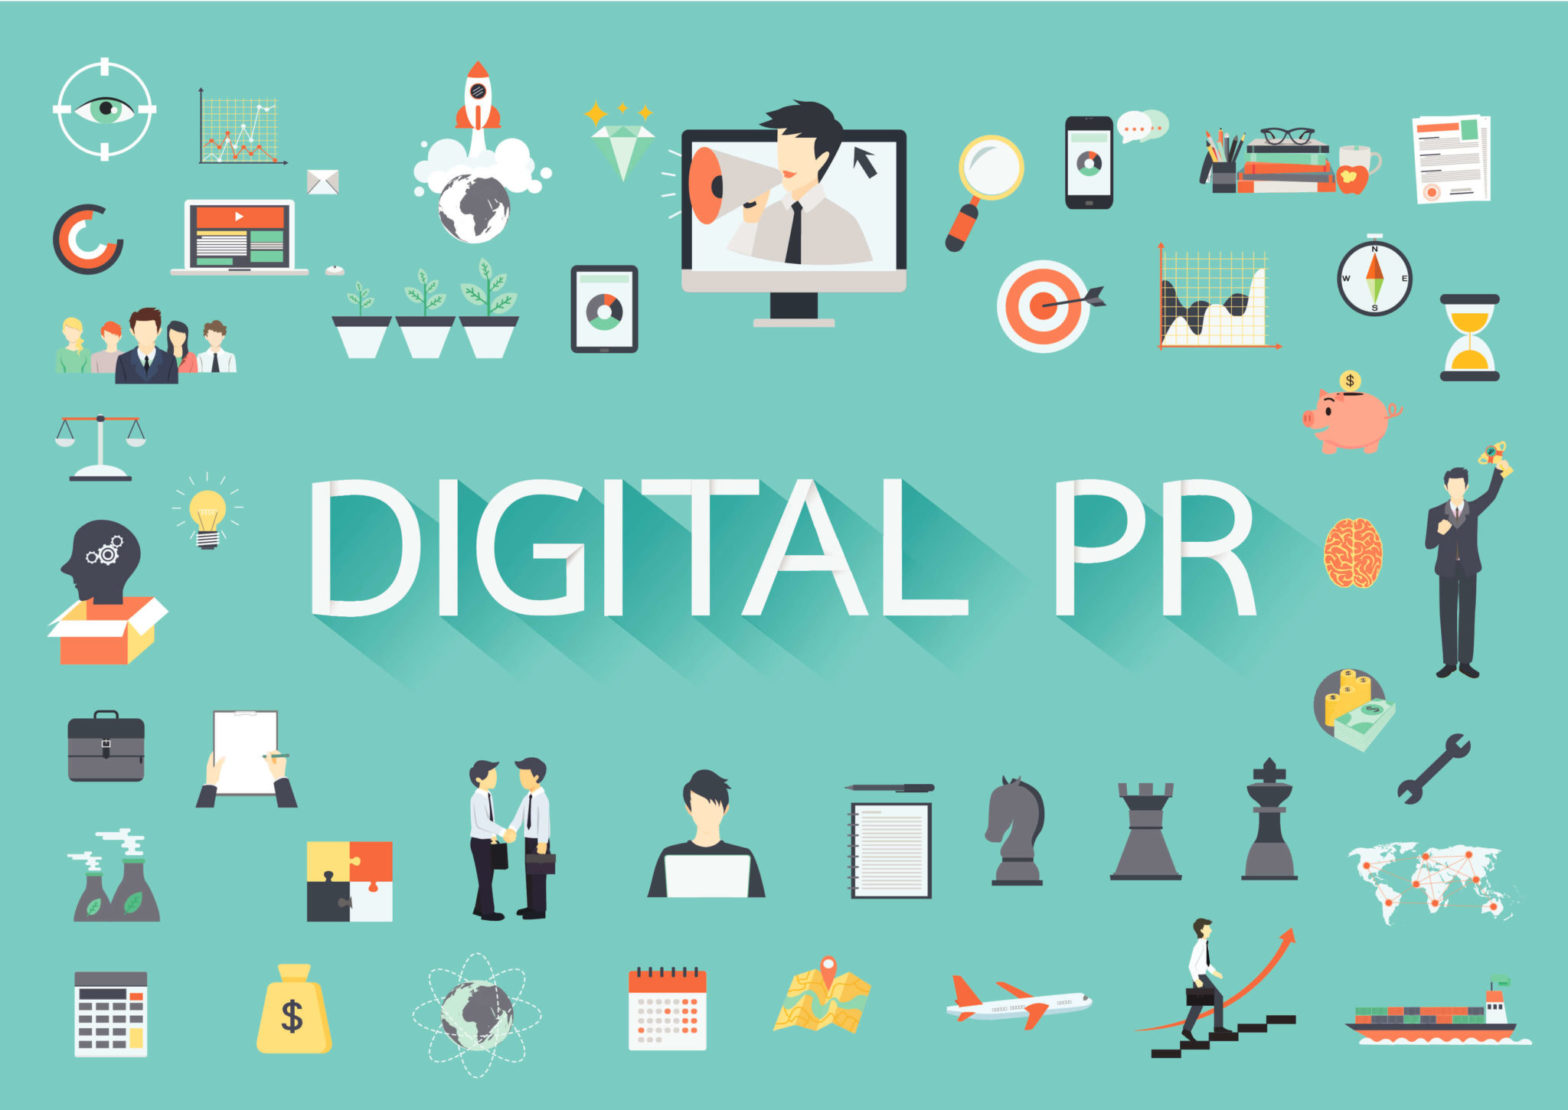 Digital PR for Small Businesses: Including It In Your Strategy